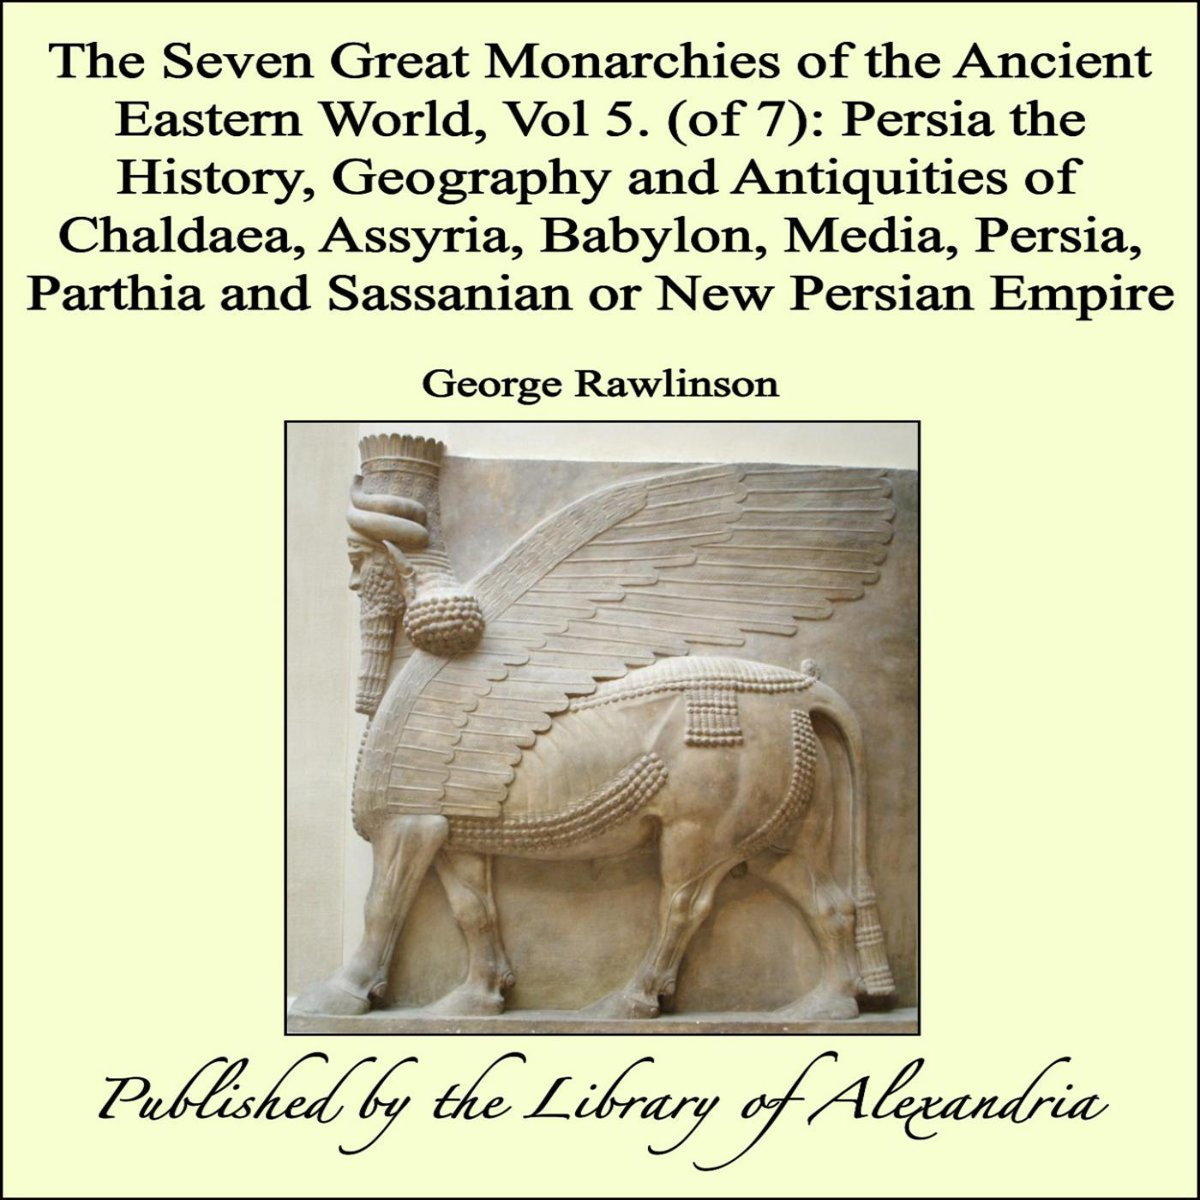 The Seven Great Monarchies of The Ancient Eastern World, Vol 5. (of 7): Persia The History, Geography and Antiquities of Chaldaea, Assyria, Babylon, Media, Persia, Parthia and Sassanian or Ne